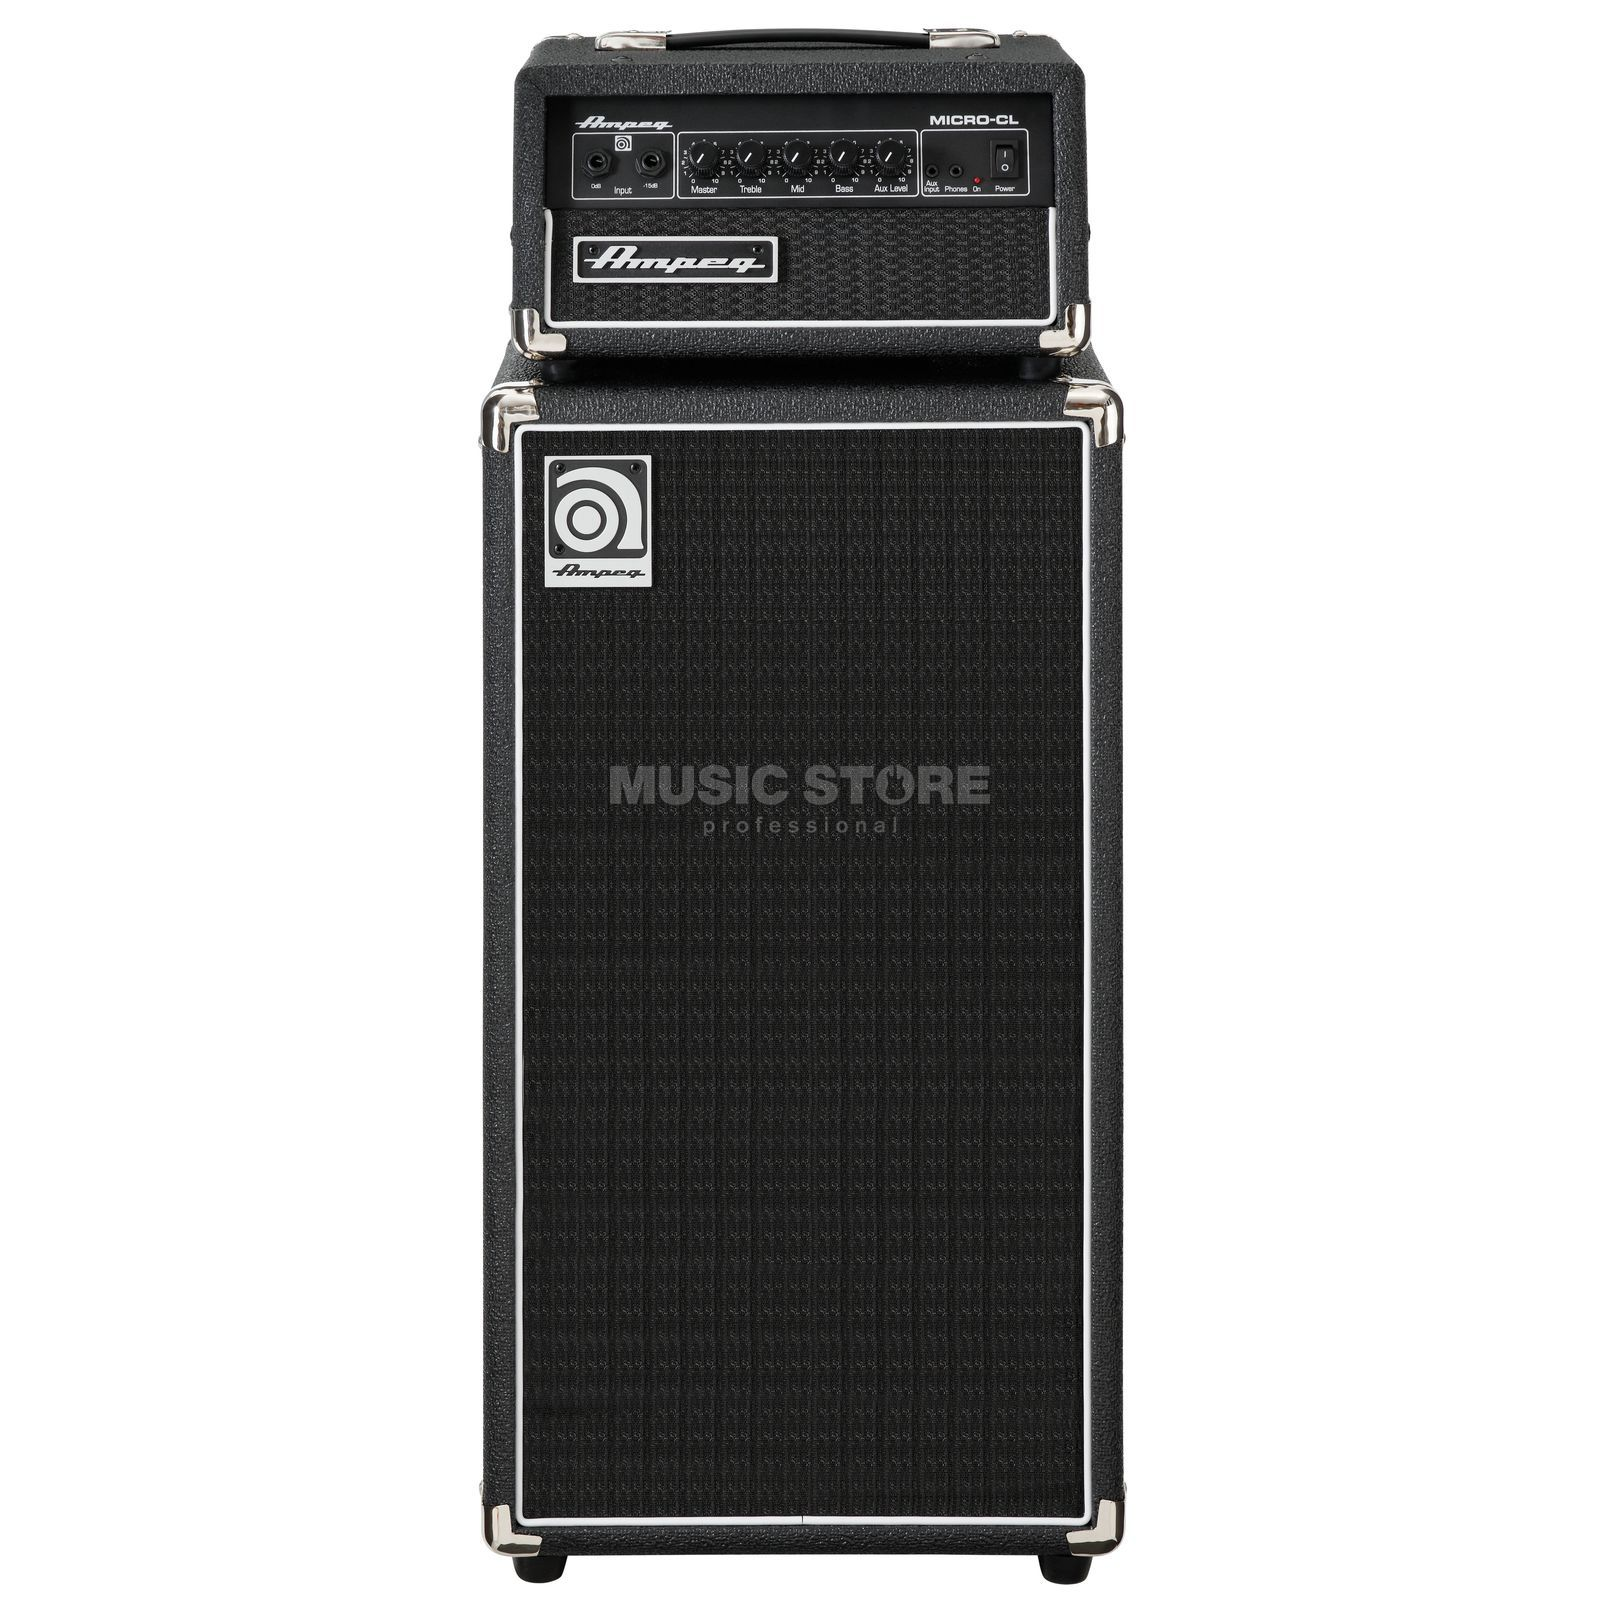 Ampeg Micro-CL Bass Guitar Amplifier  Mini Stack   Zdjęcie produktu